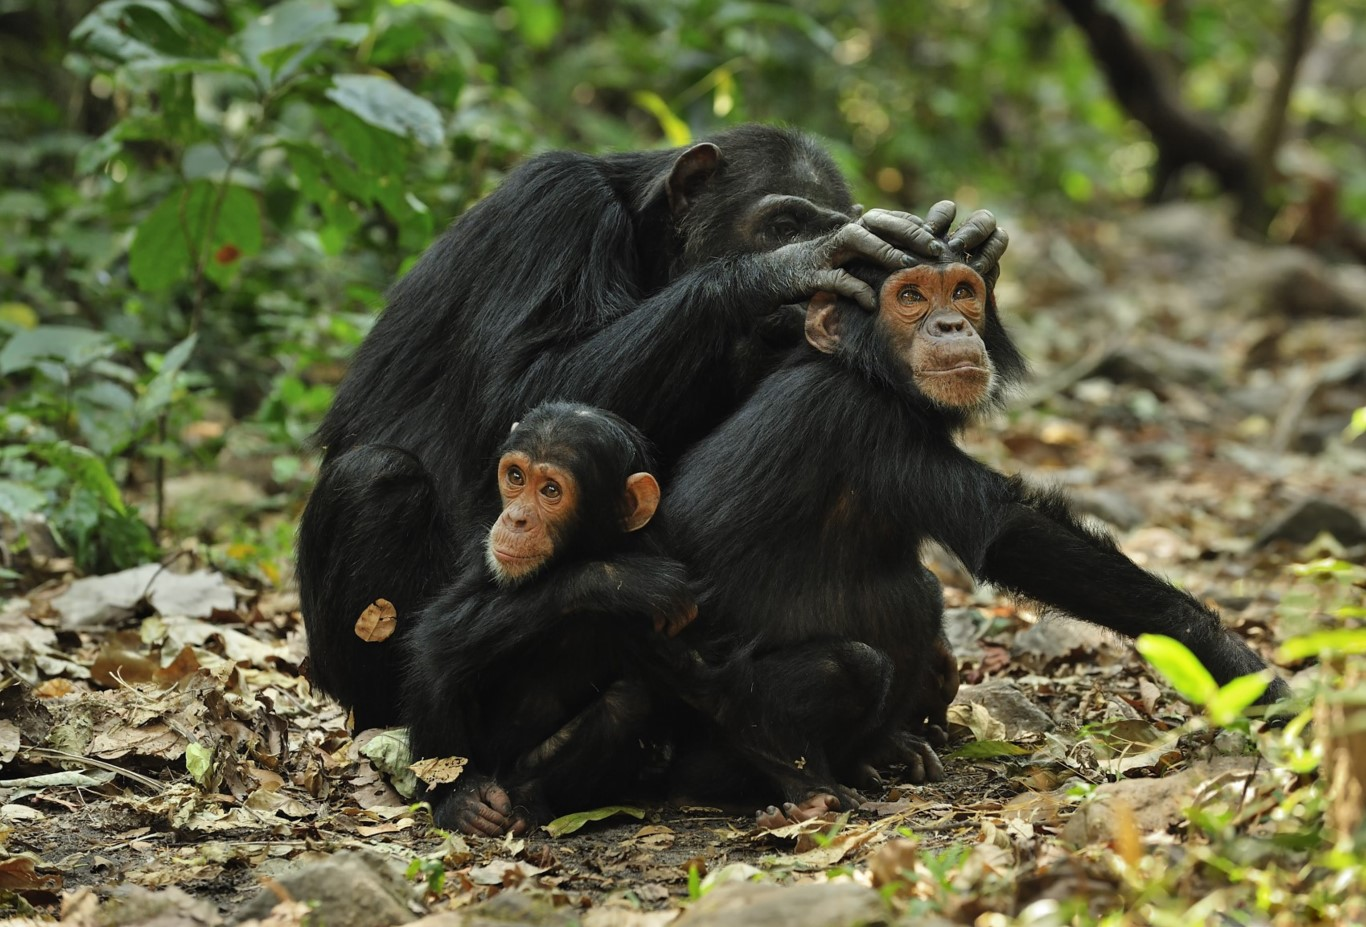 Chimpanzee Tracking Safari at Gombe Stream National Park Tanzania